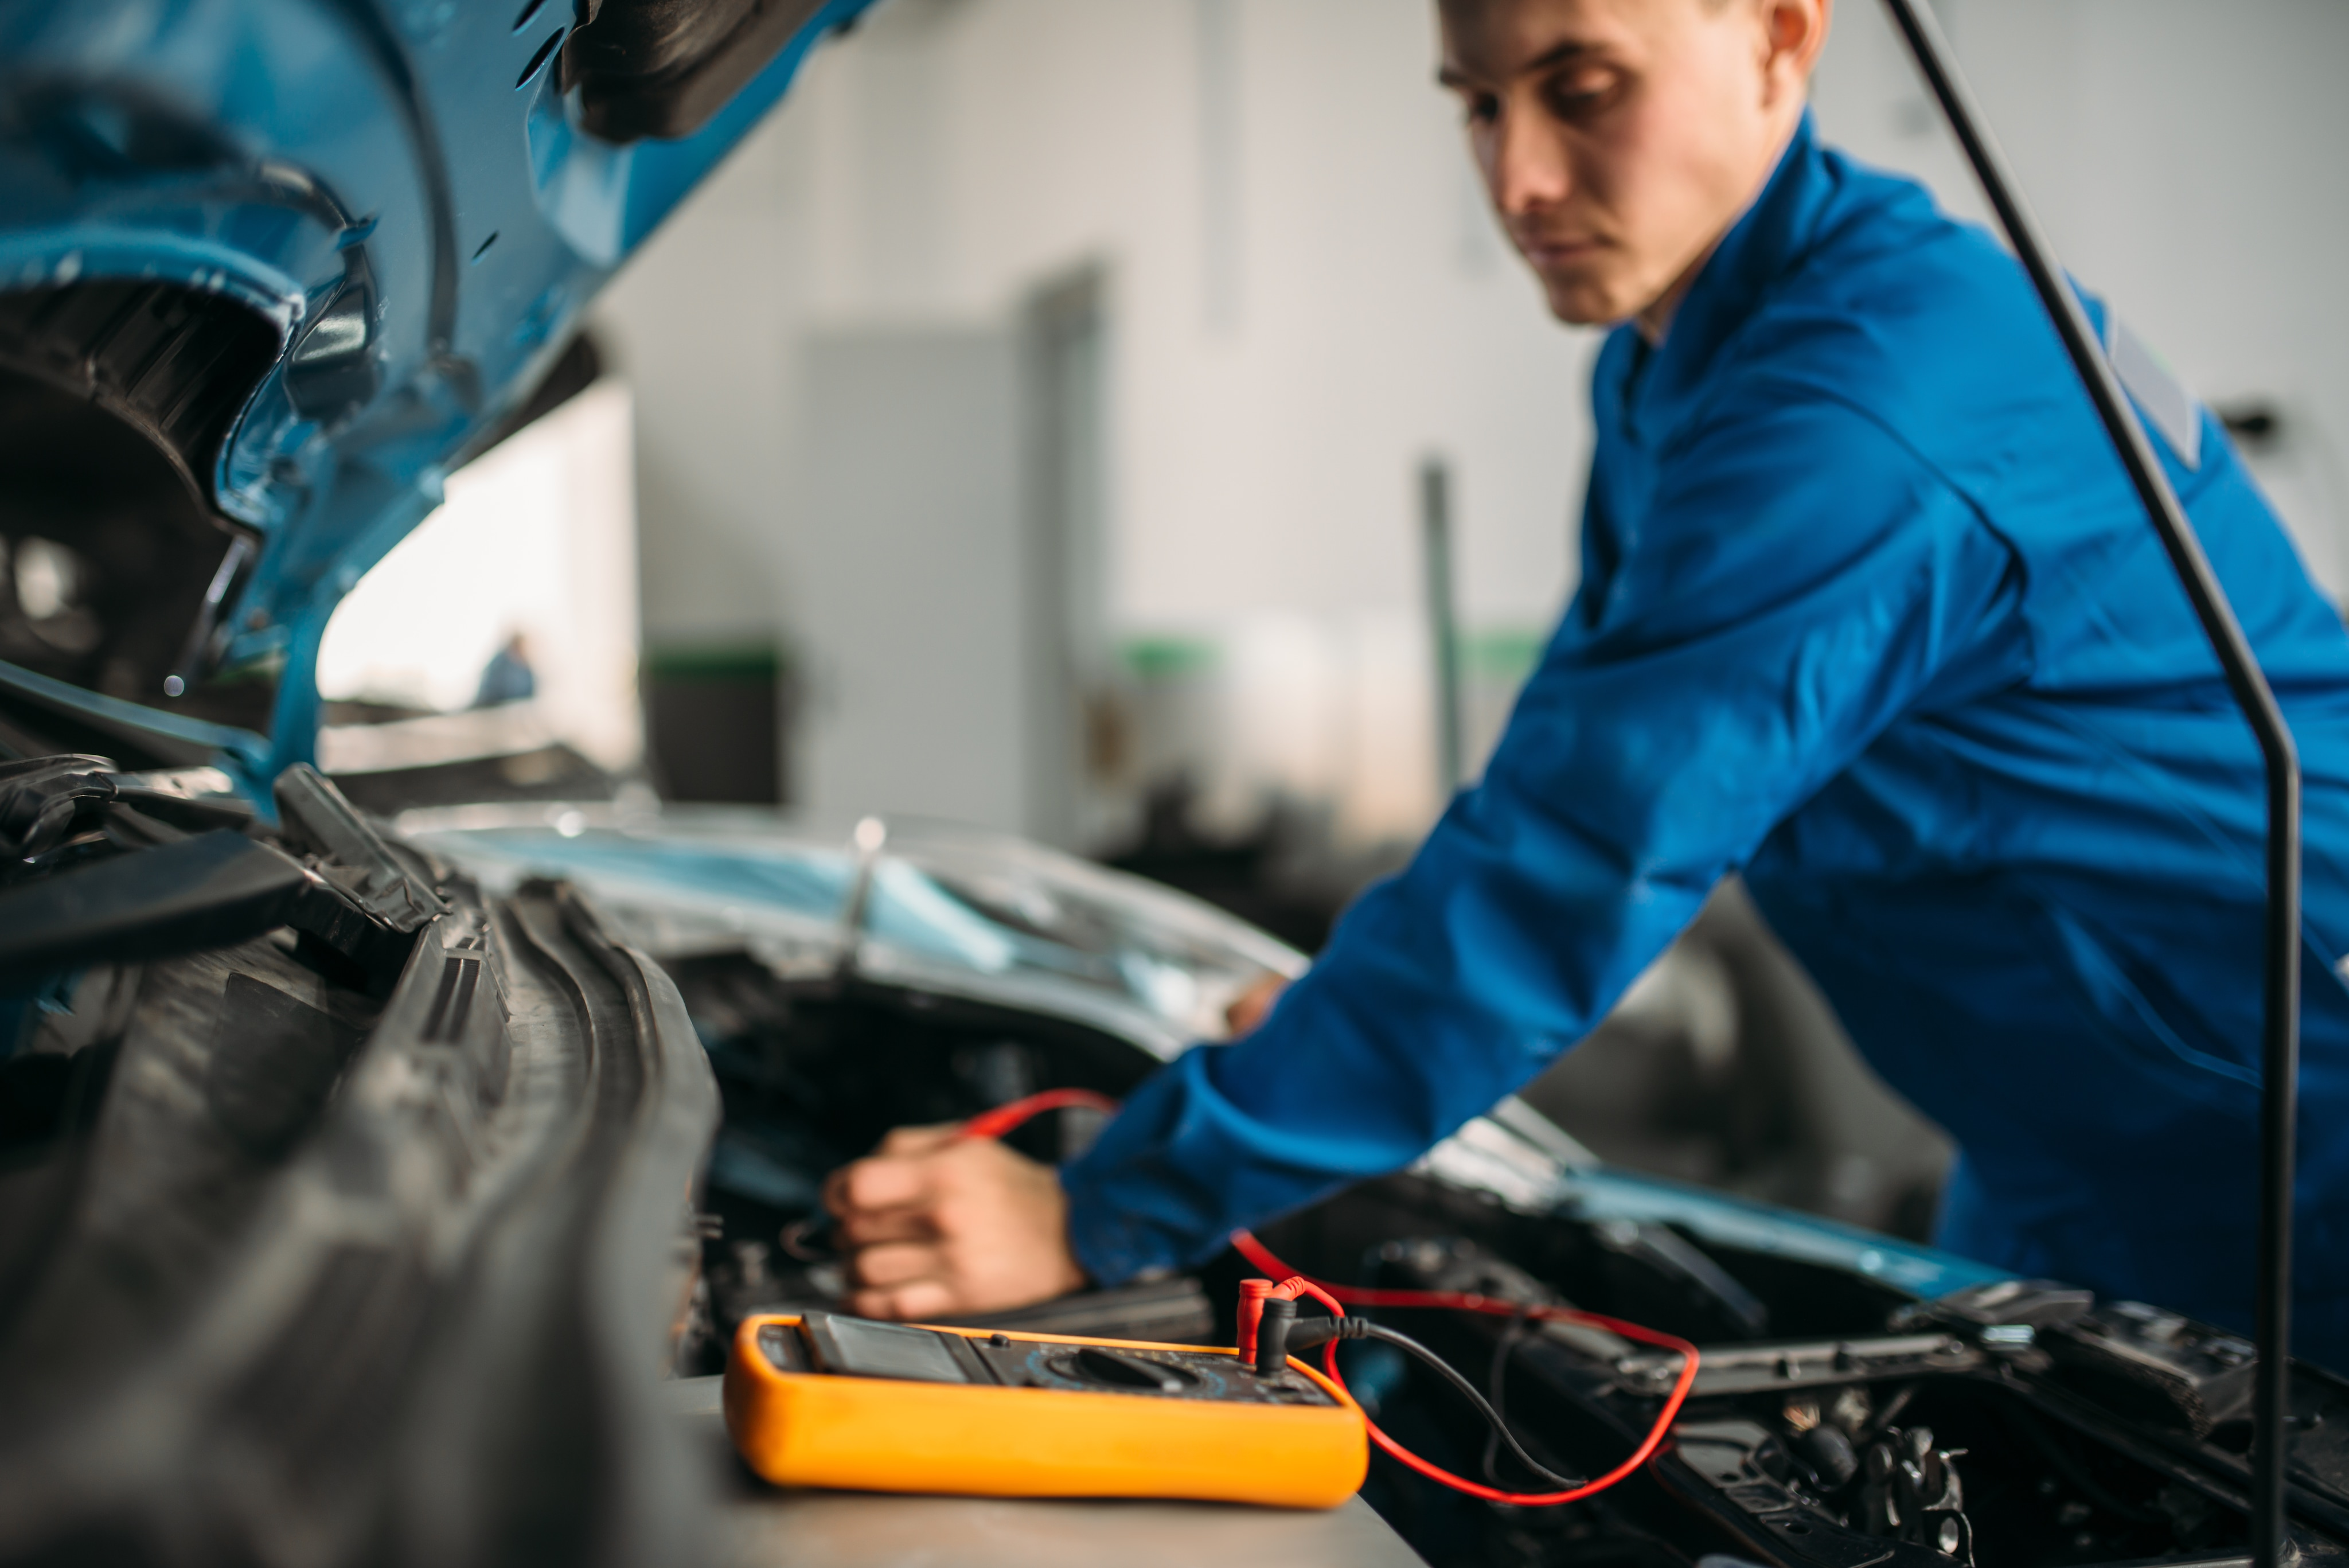 West Broad Kia is a Kia Dealership in Richmond near Laurel, VA | Mechanic working under the hood of Kia vehicle